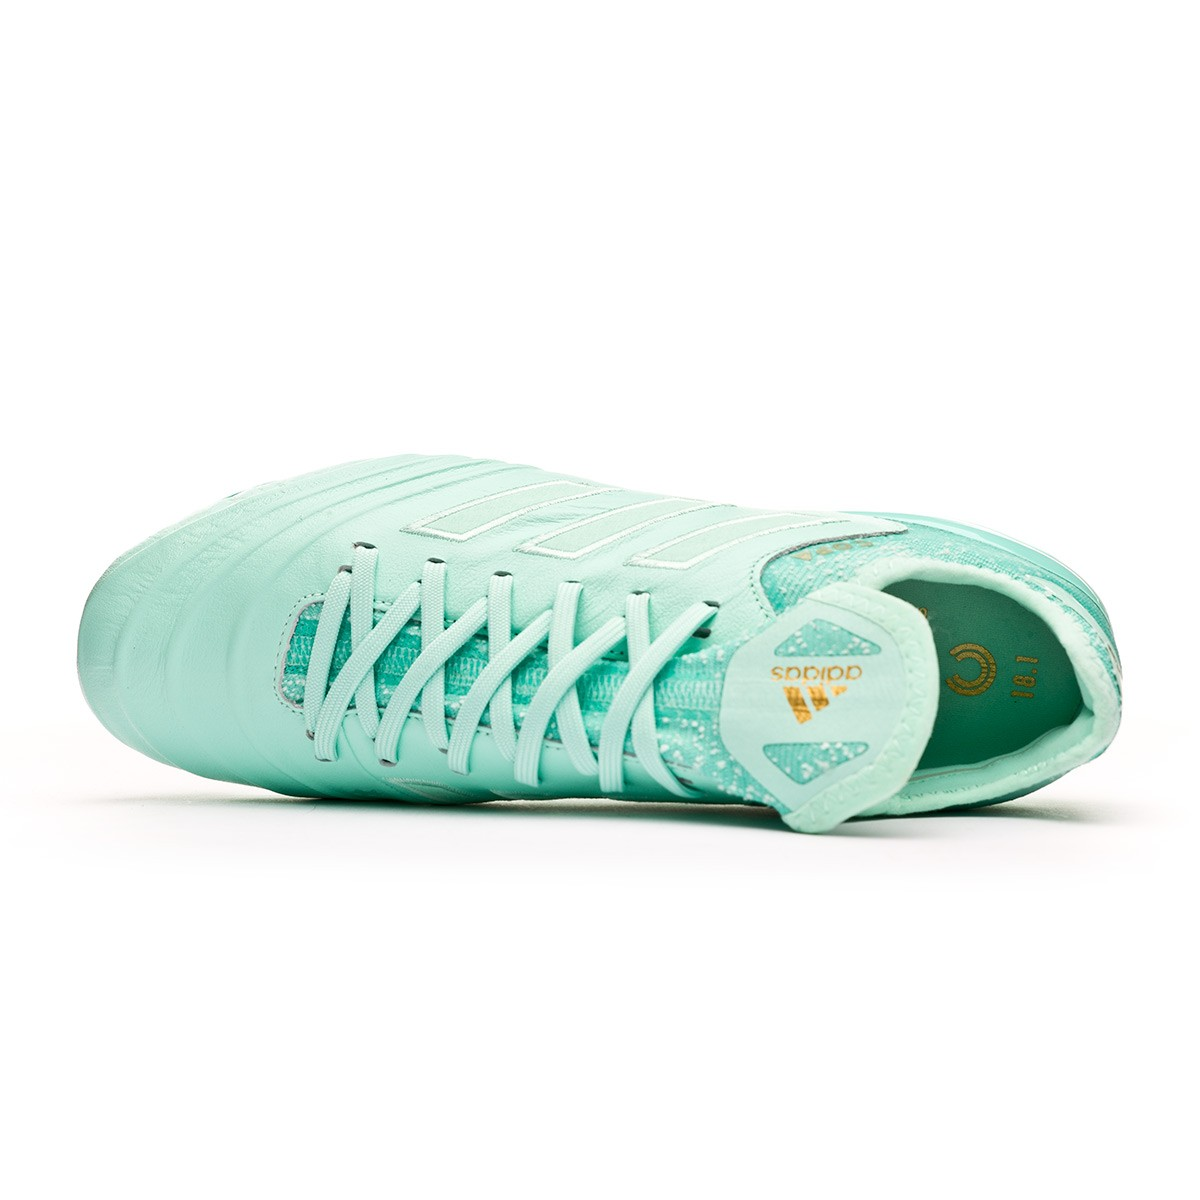 official photos 04d94 a1246 Boot adidas Copa 18.1 FG Clear mint-Clear mint-Gold metallic - Leaked soccer